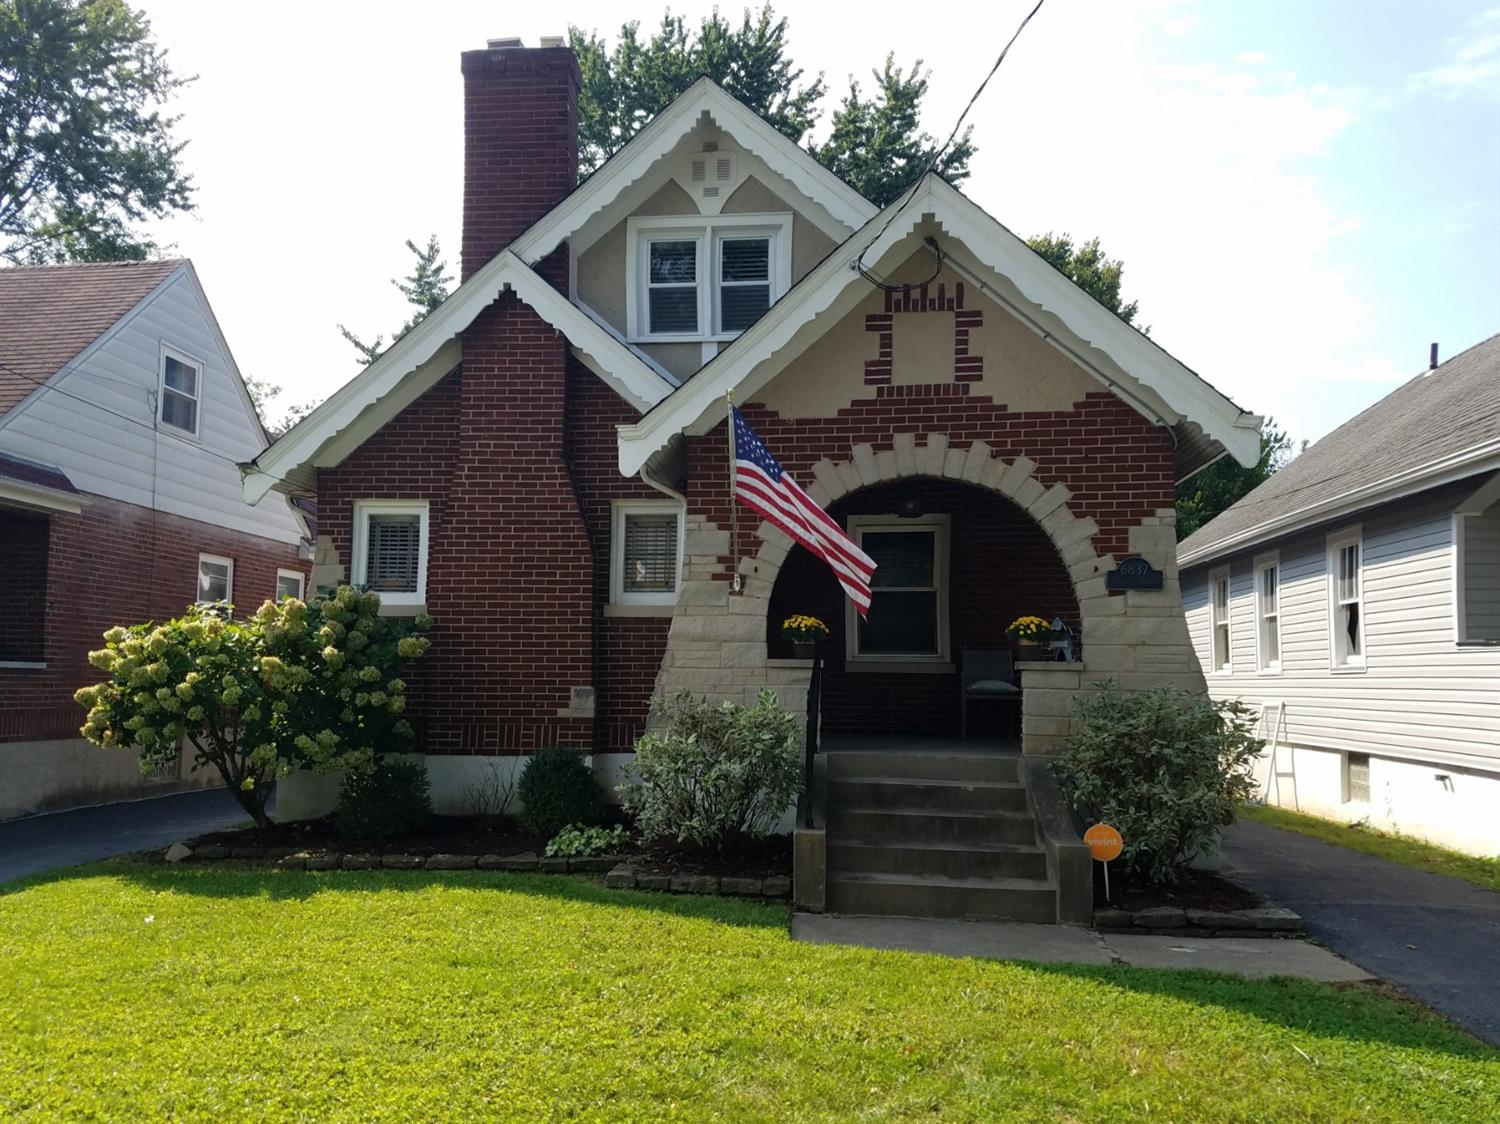 6837 Palmetto St Madisonville, OH